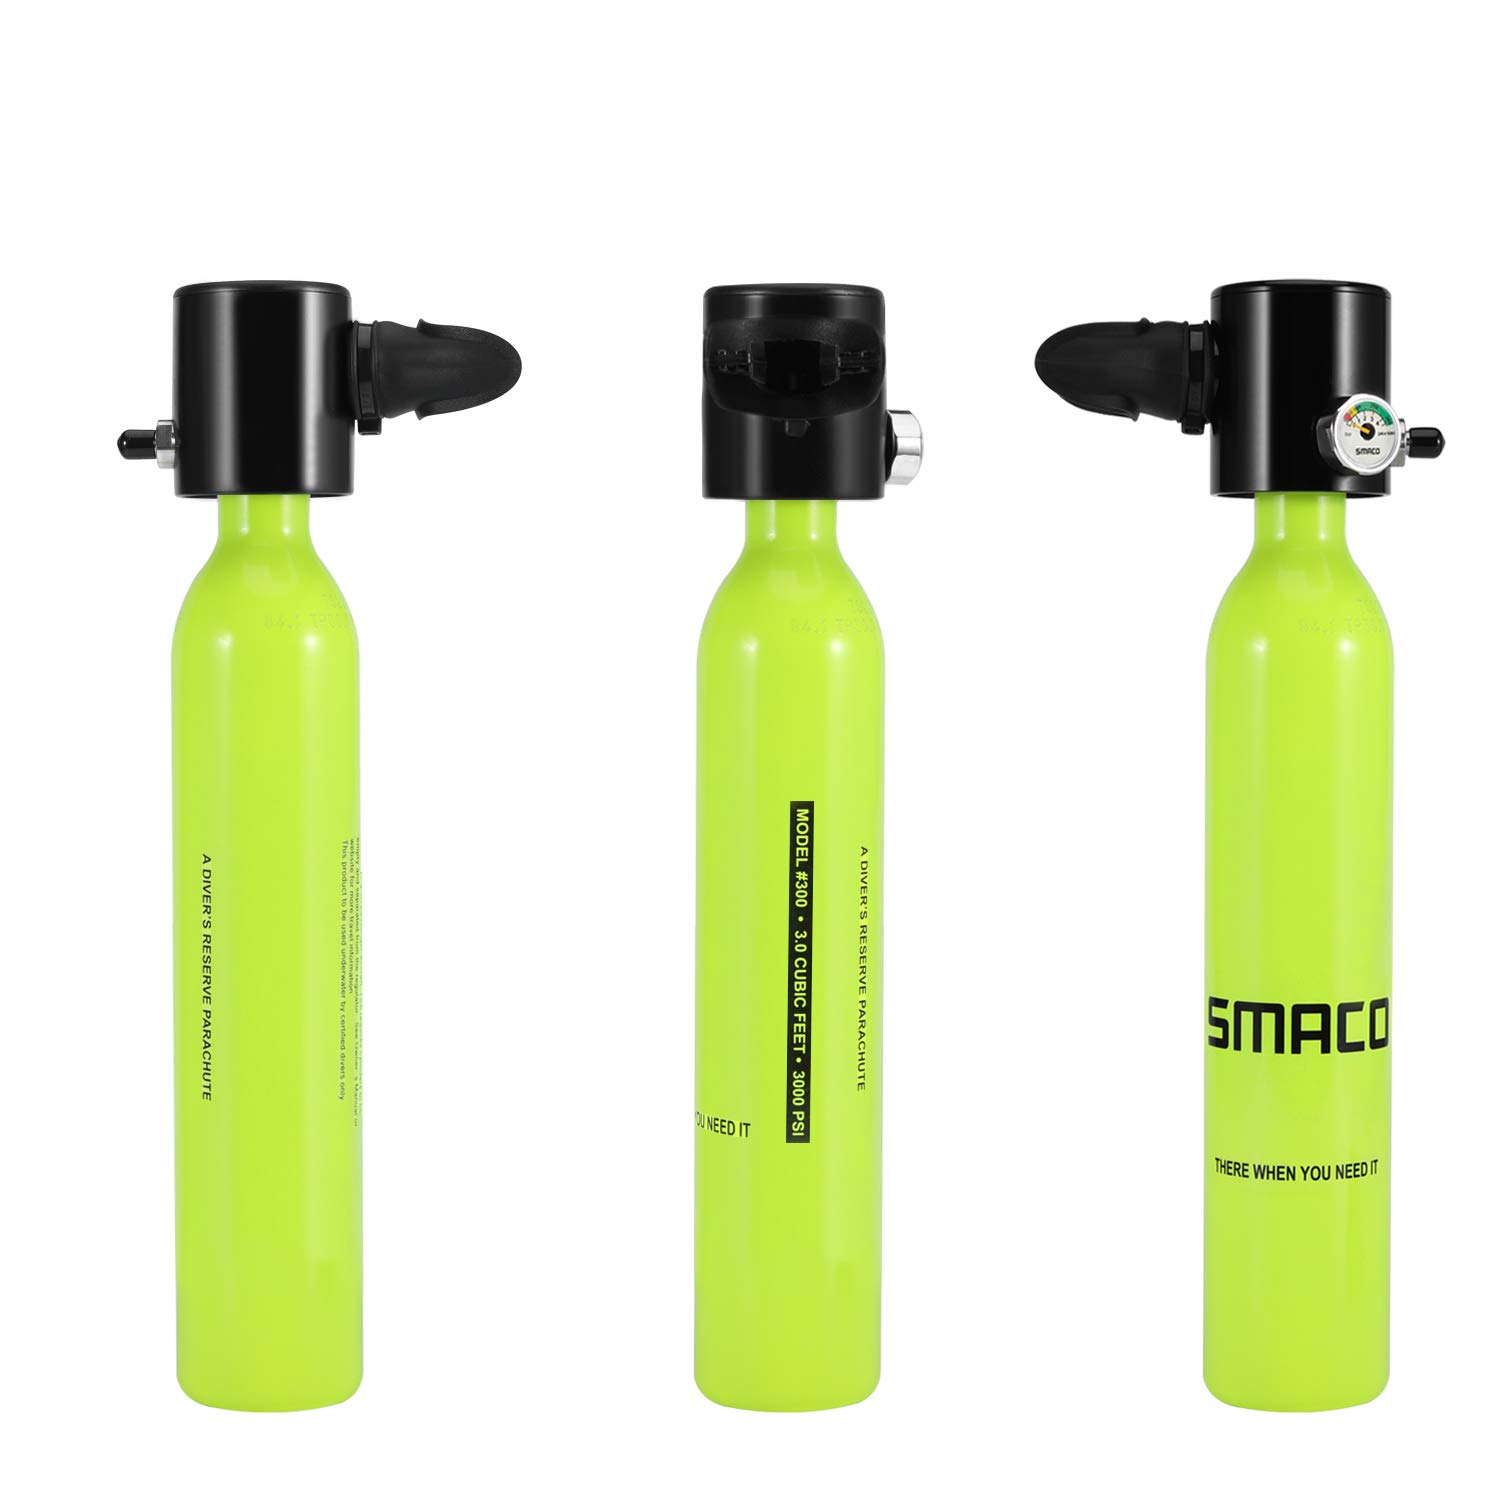 Surfing & Diving Flight Tracker Smaco Two Oxygen Cylinder Sets Mini Scuba Diving Equipment Tank Total Freedom Breath Underwater For 5 To 10 Minutes